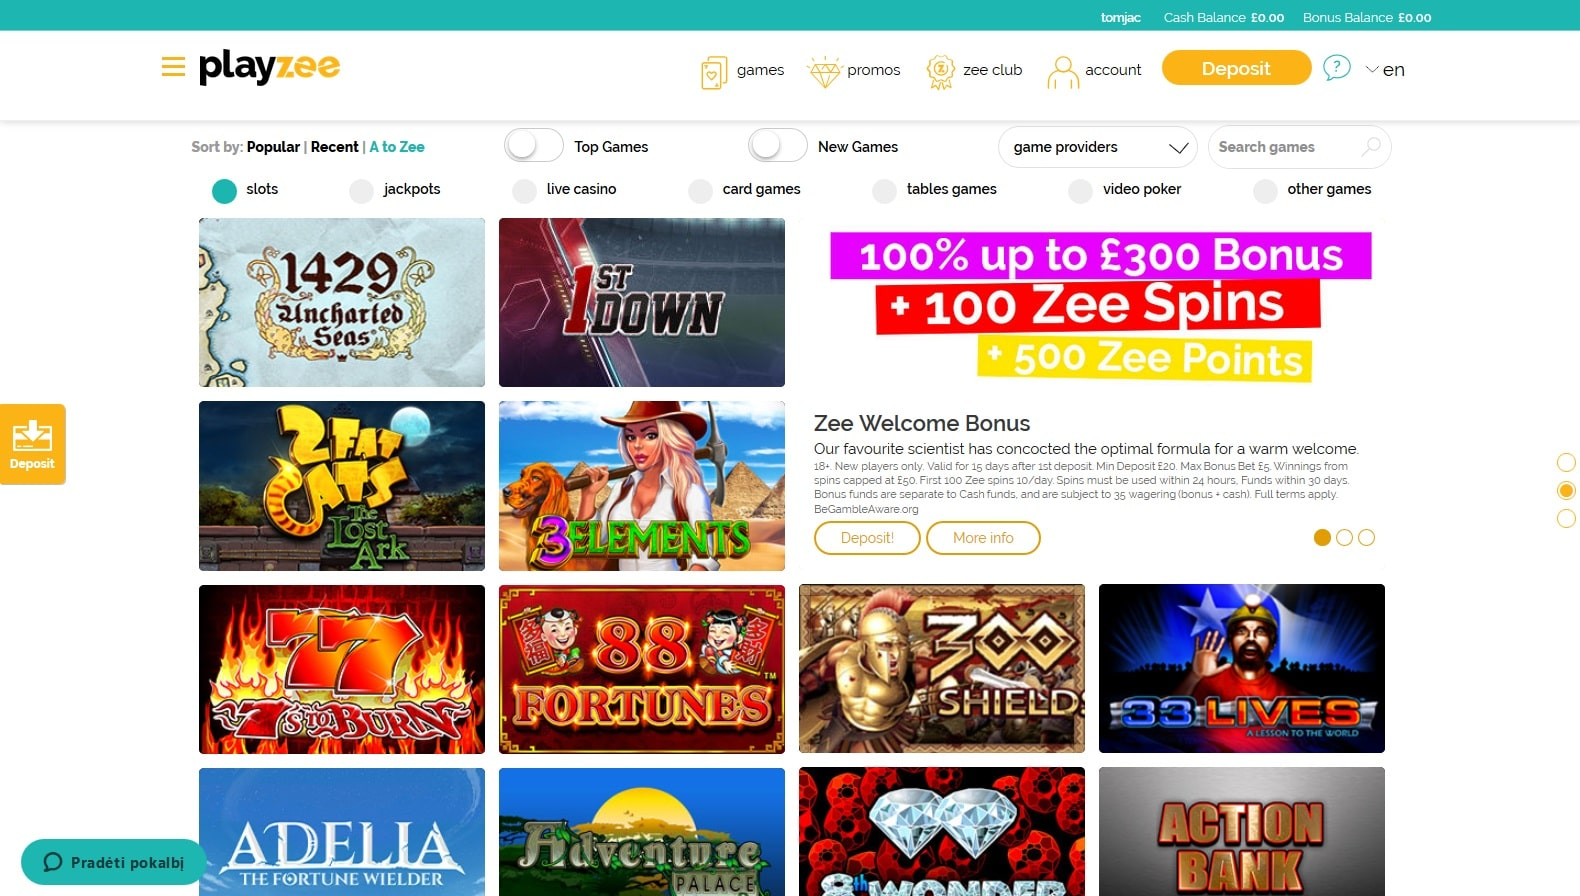 playzee casino games